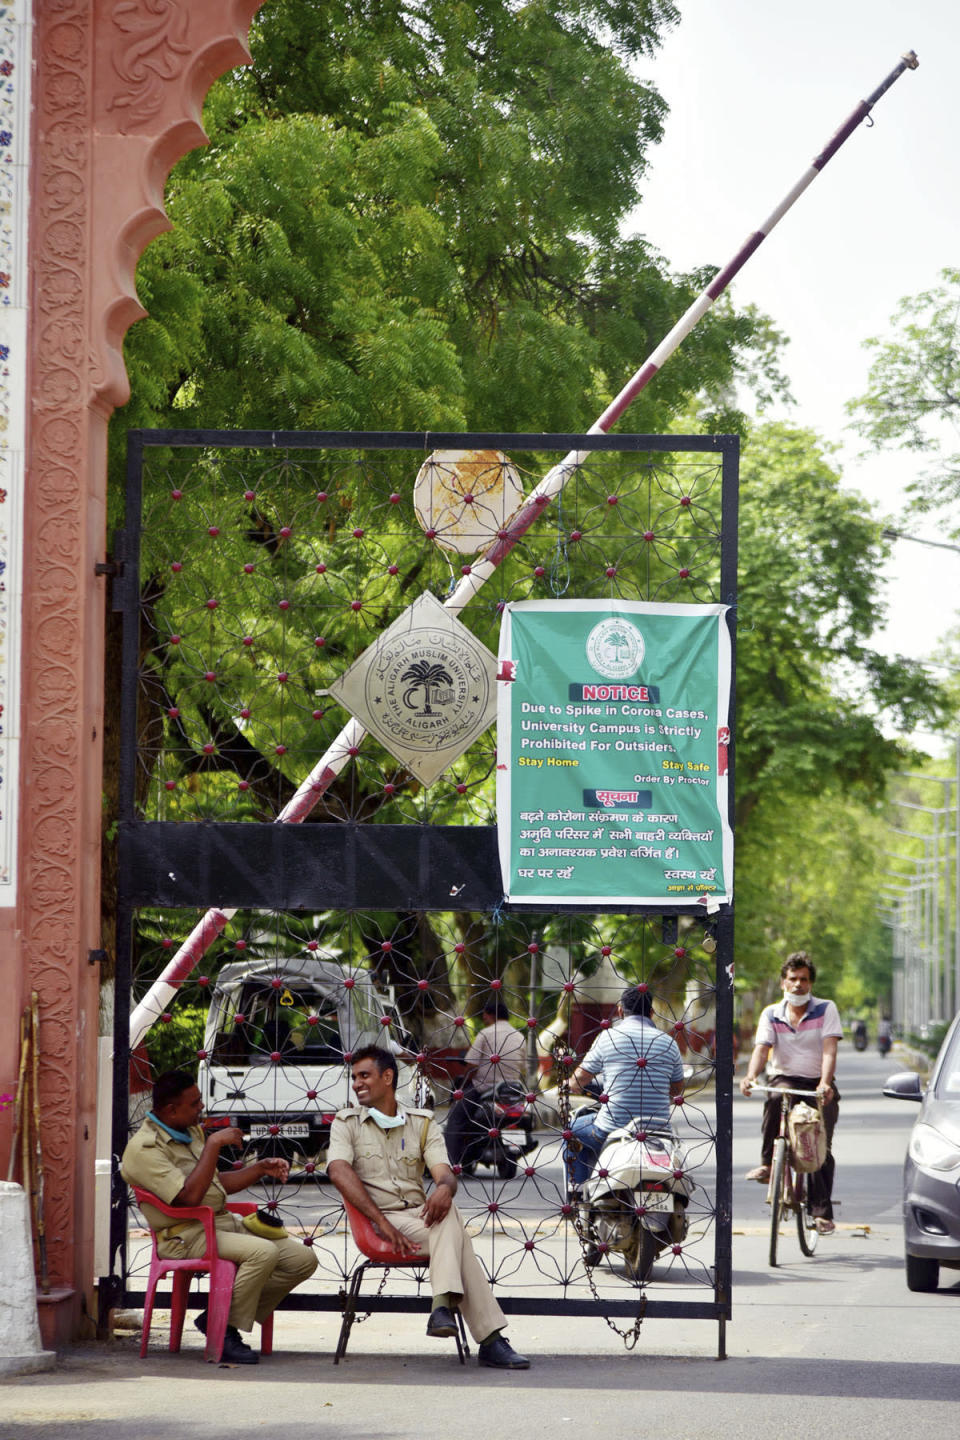 Policemen sit at the entrance of Aligarh Muslim University (AMU) with a banner announcing its closure because of the coronavirus pandemic in Aligarh, India, Saturday, June 12, 2021. Within just one month, the official Facebook page of Aligarh Muslim University, one of the topmost in India, published about two dozen obituaries of its teachers, all lost to the pandemic. Across the country, the deaths of educators during the devastating surge in April and May have left students and staff members grief-stricken and close-knit university communities shaken. (AP Photo/Manoj Aligadi)